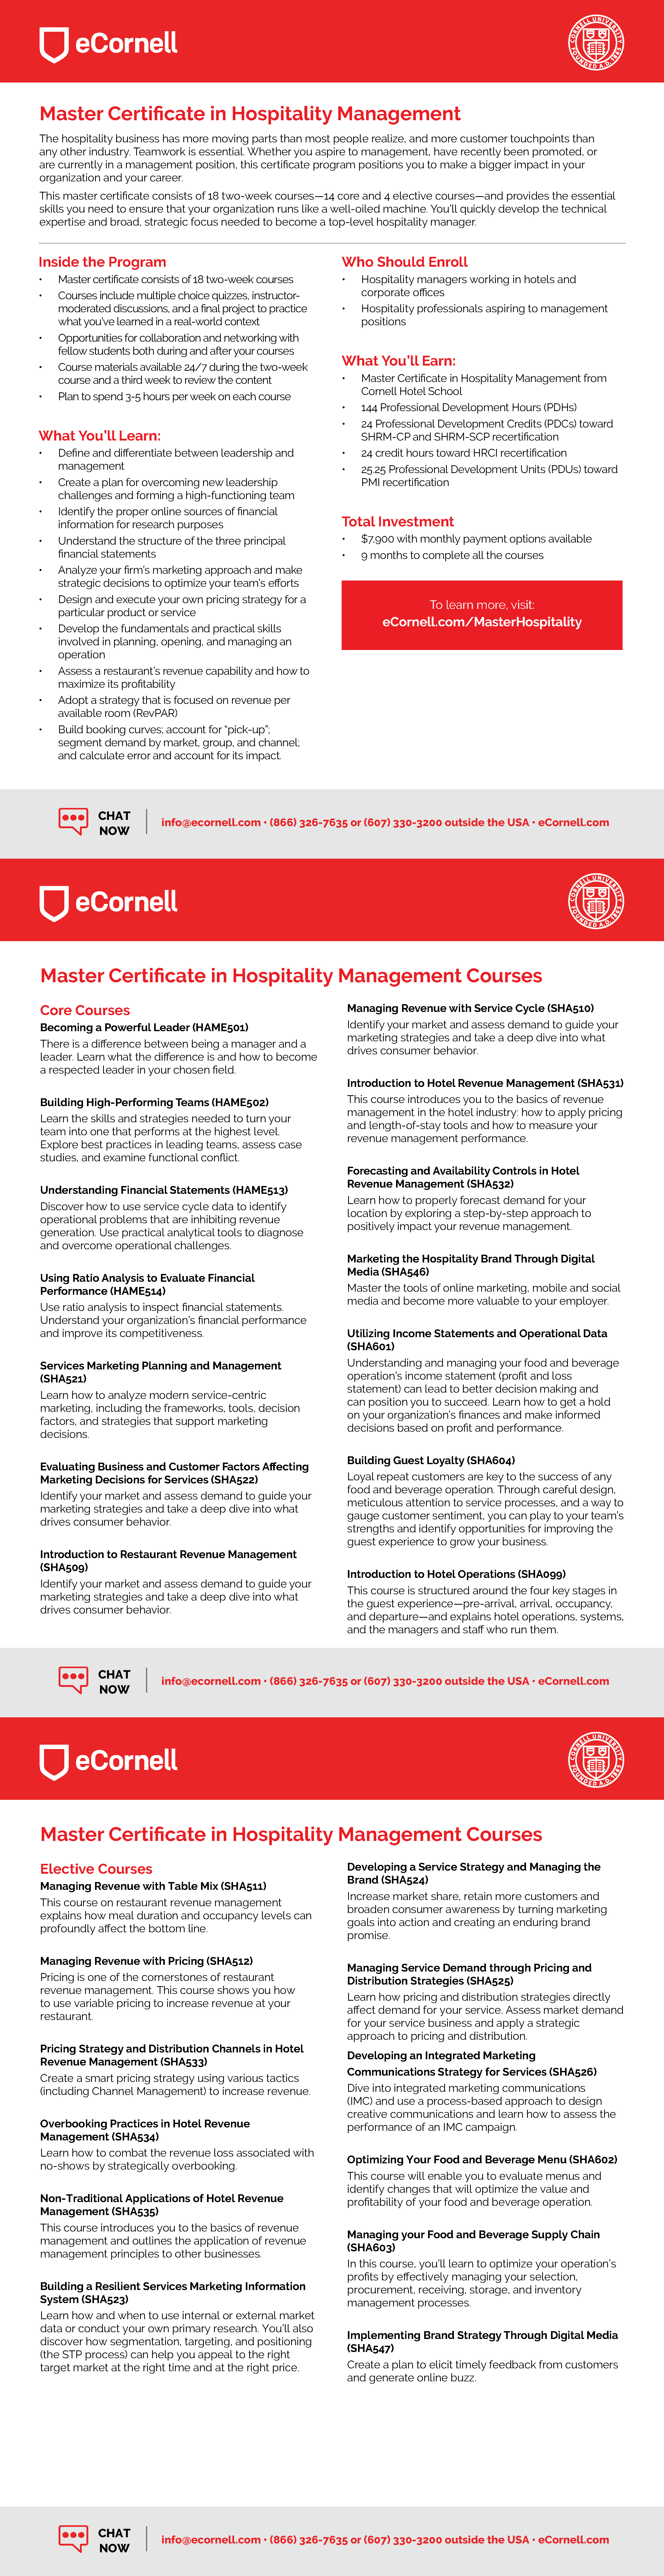 Master Certificate in Hospitality Management